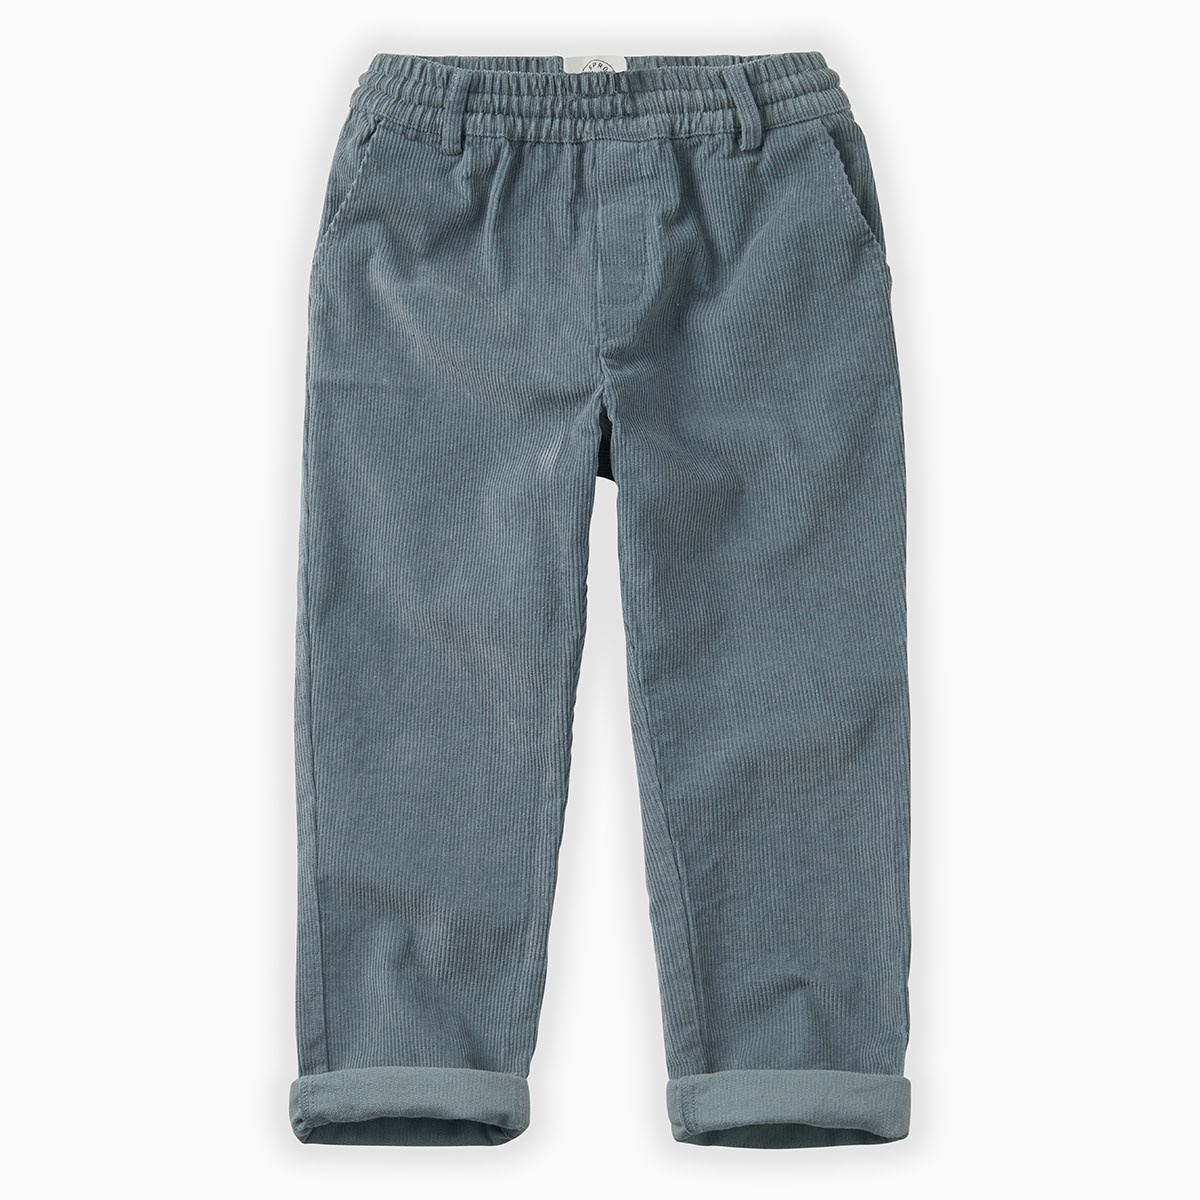 Sproet & Sprout Sproet & Sprout - Pants Corduroy Stone Blue